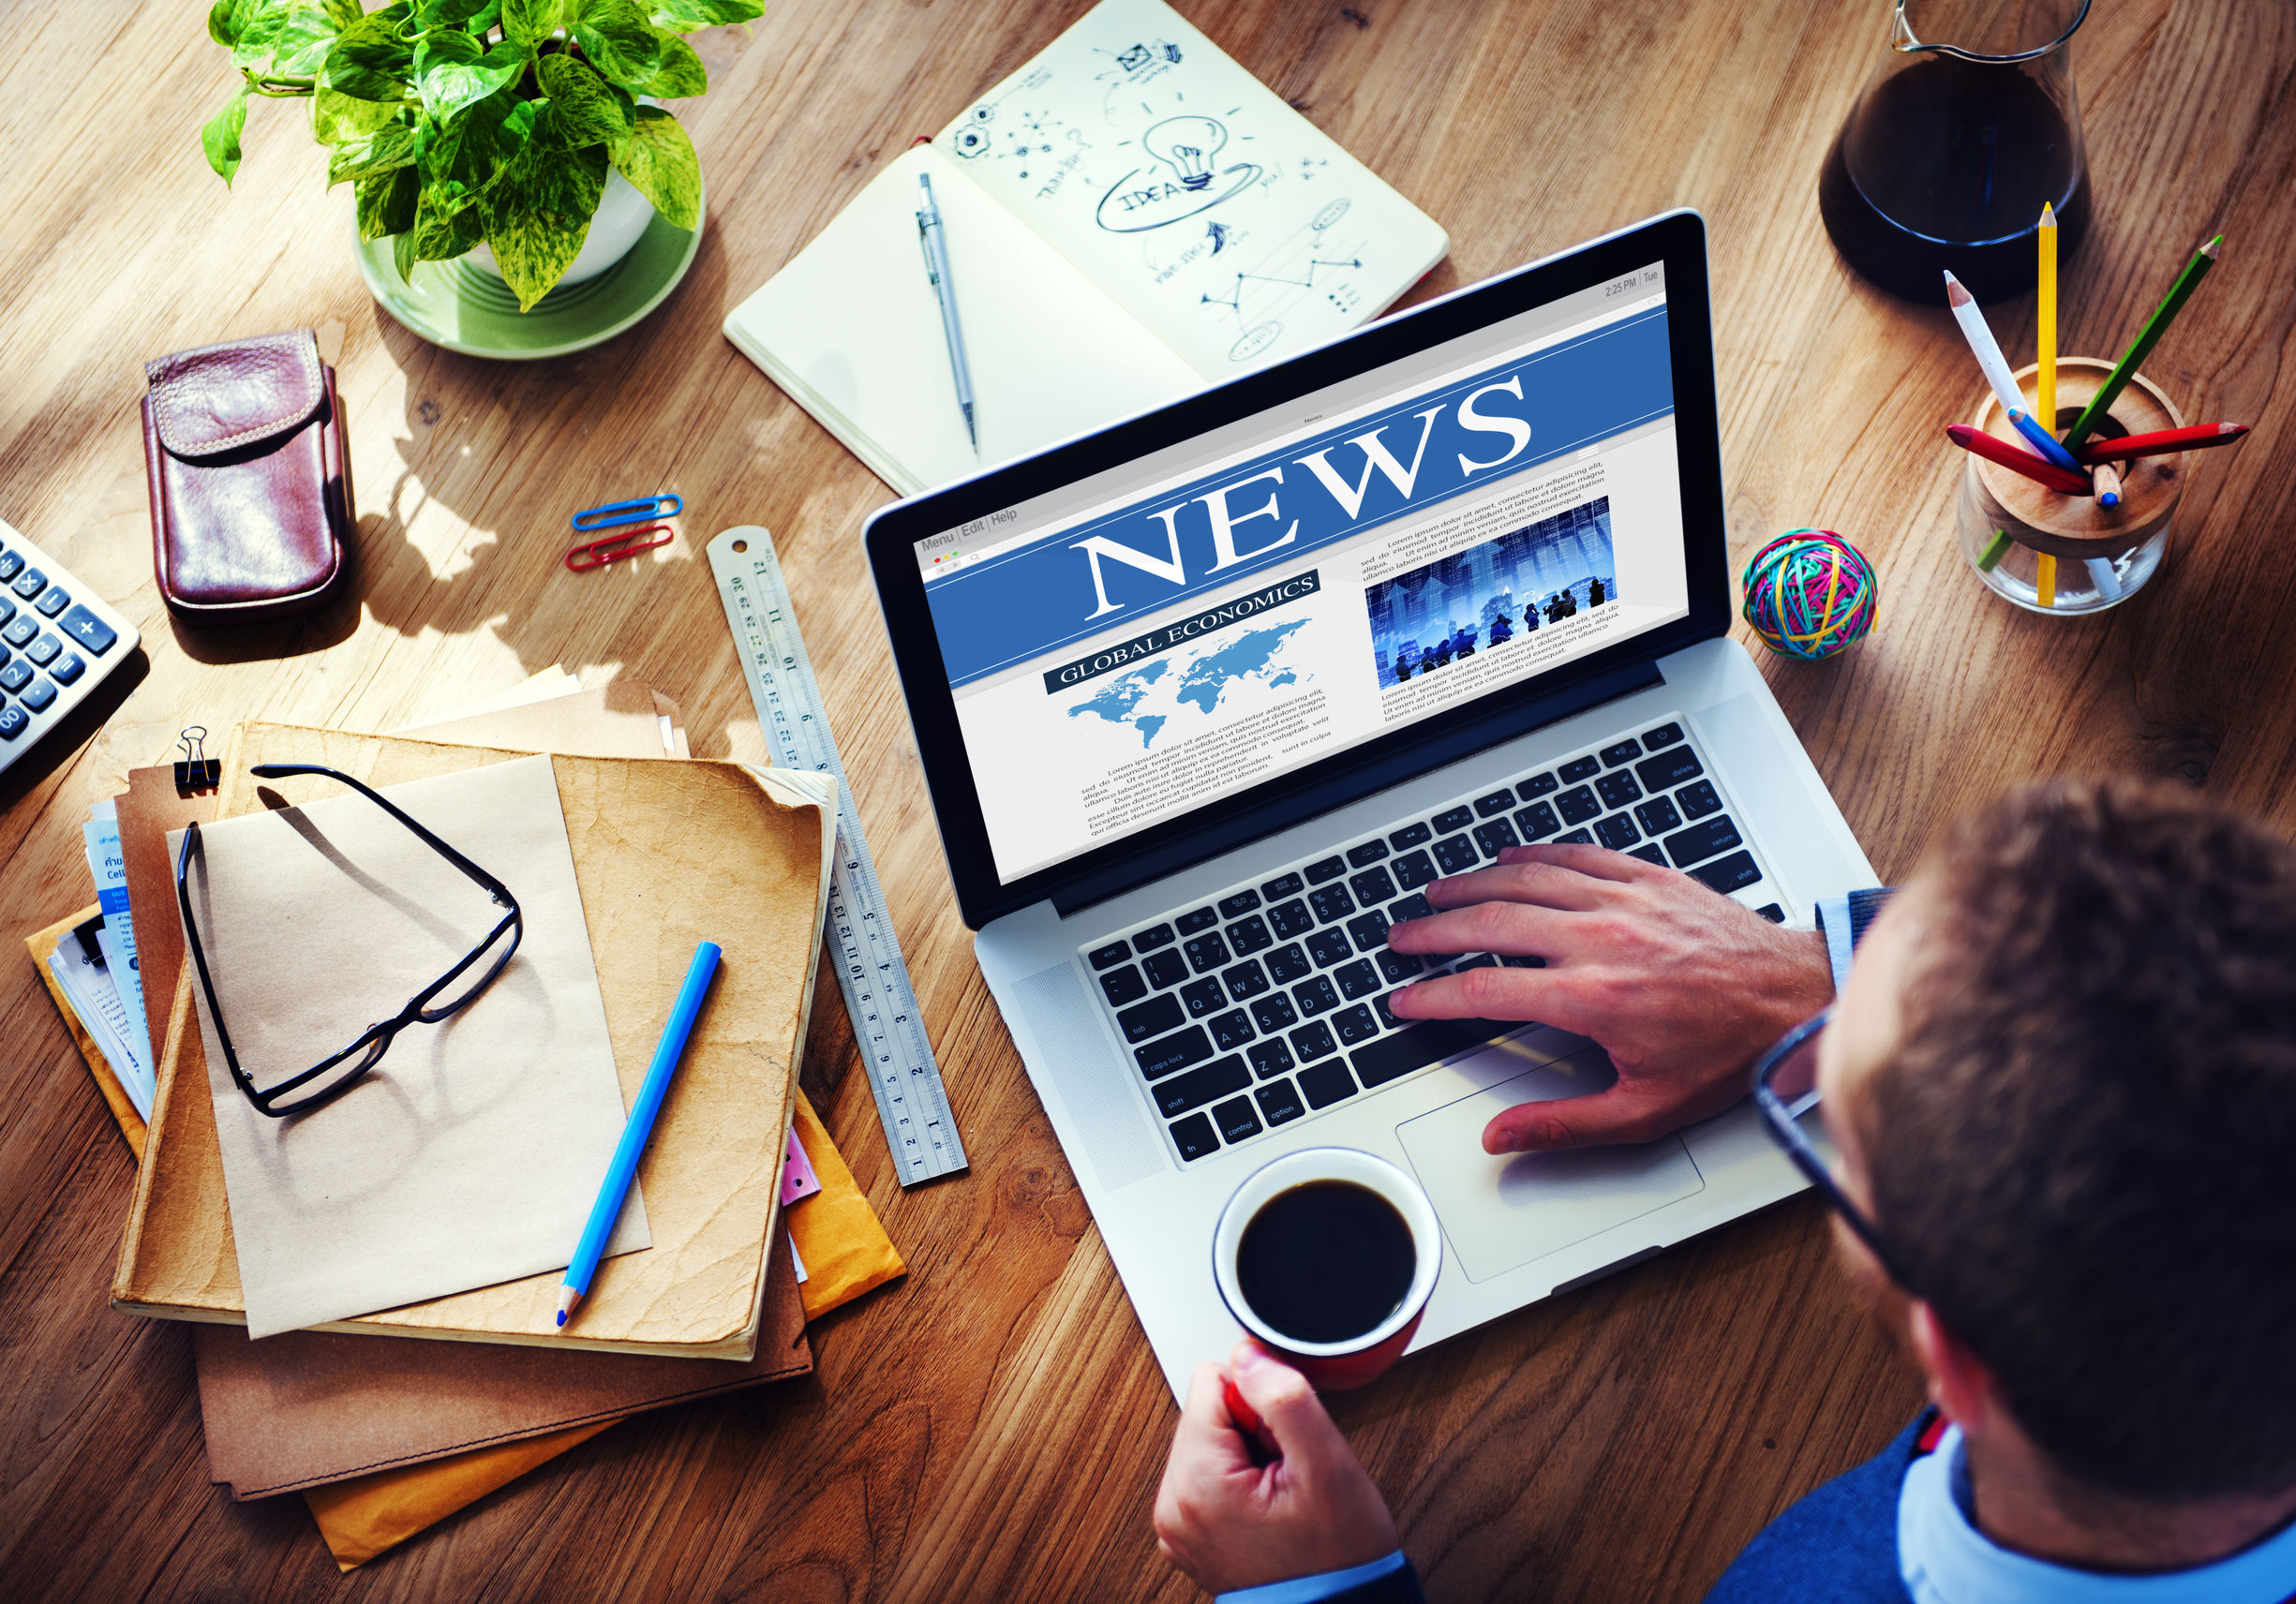 Five Tips to Become an Expert Newsjacker